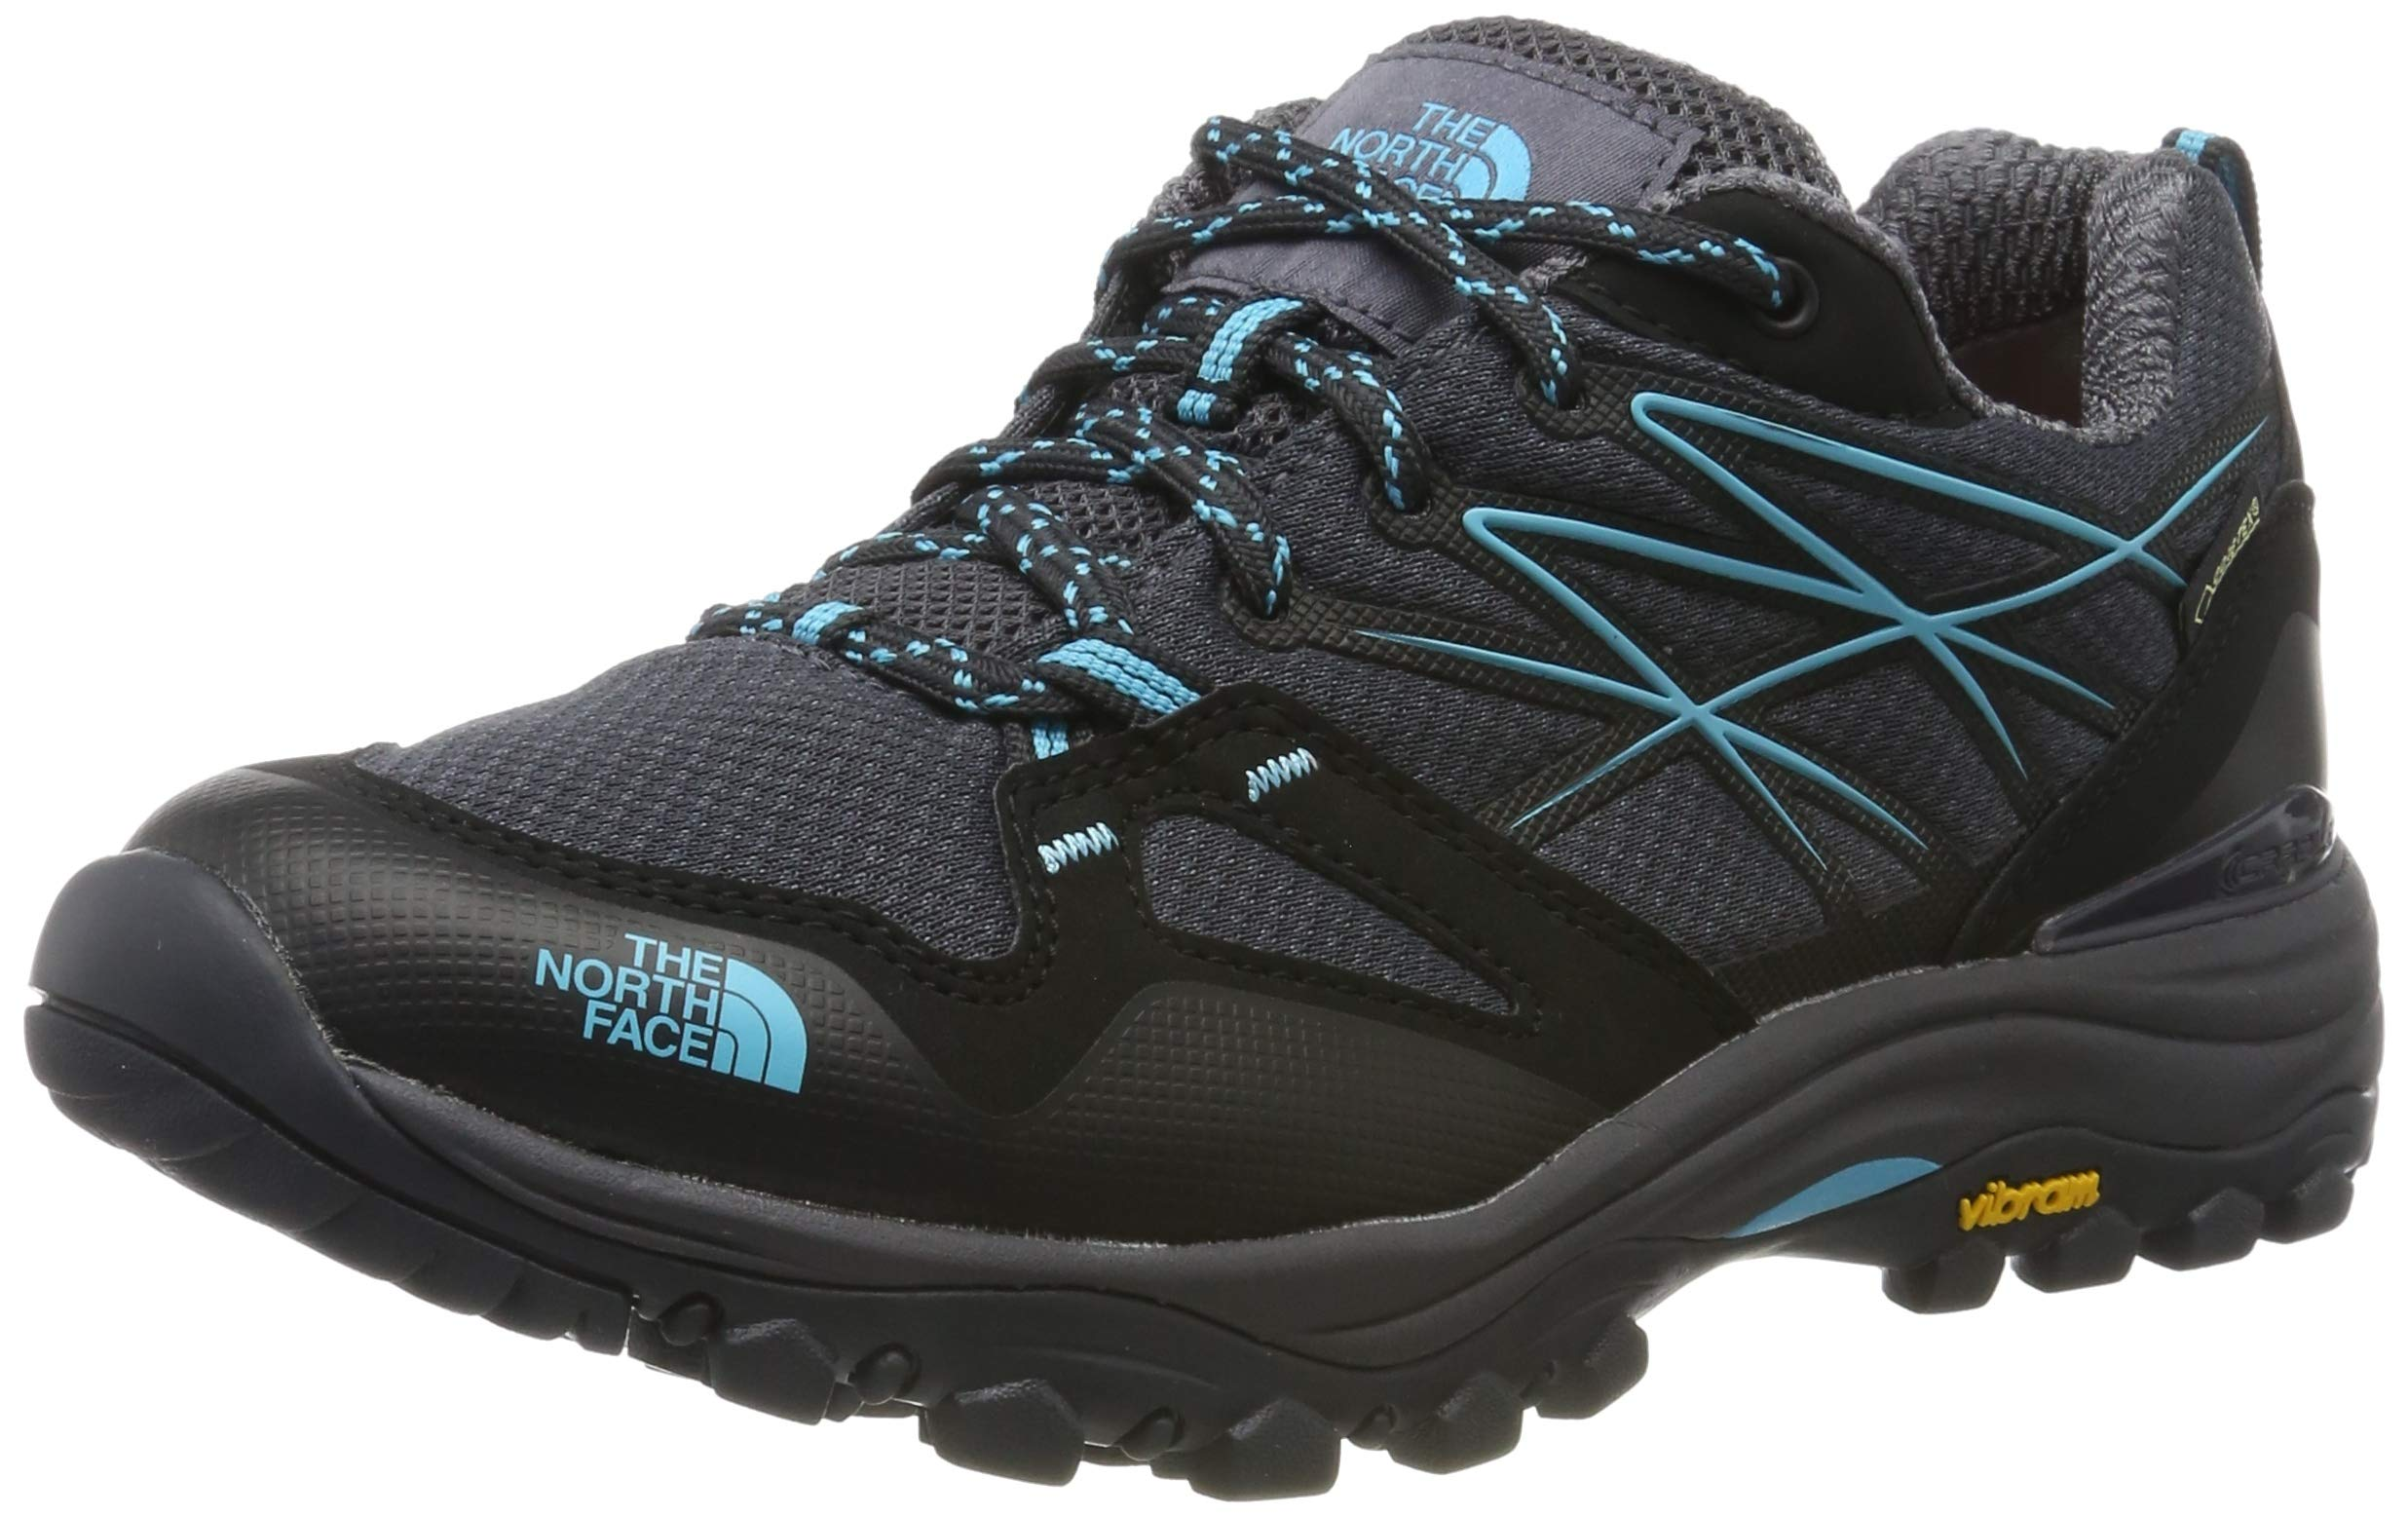 810IIoLipFL - THE NORTH FACE Women's W Hedgehog Fastpack GTX (EU) Low Rise Hiking Boots